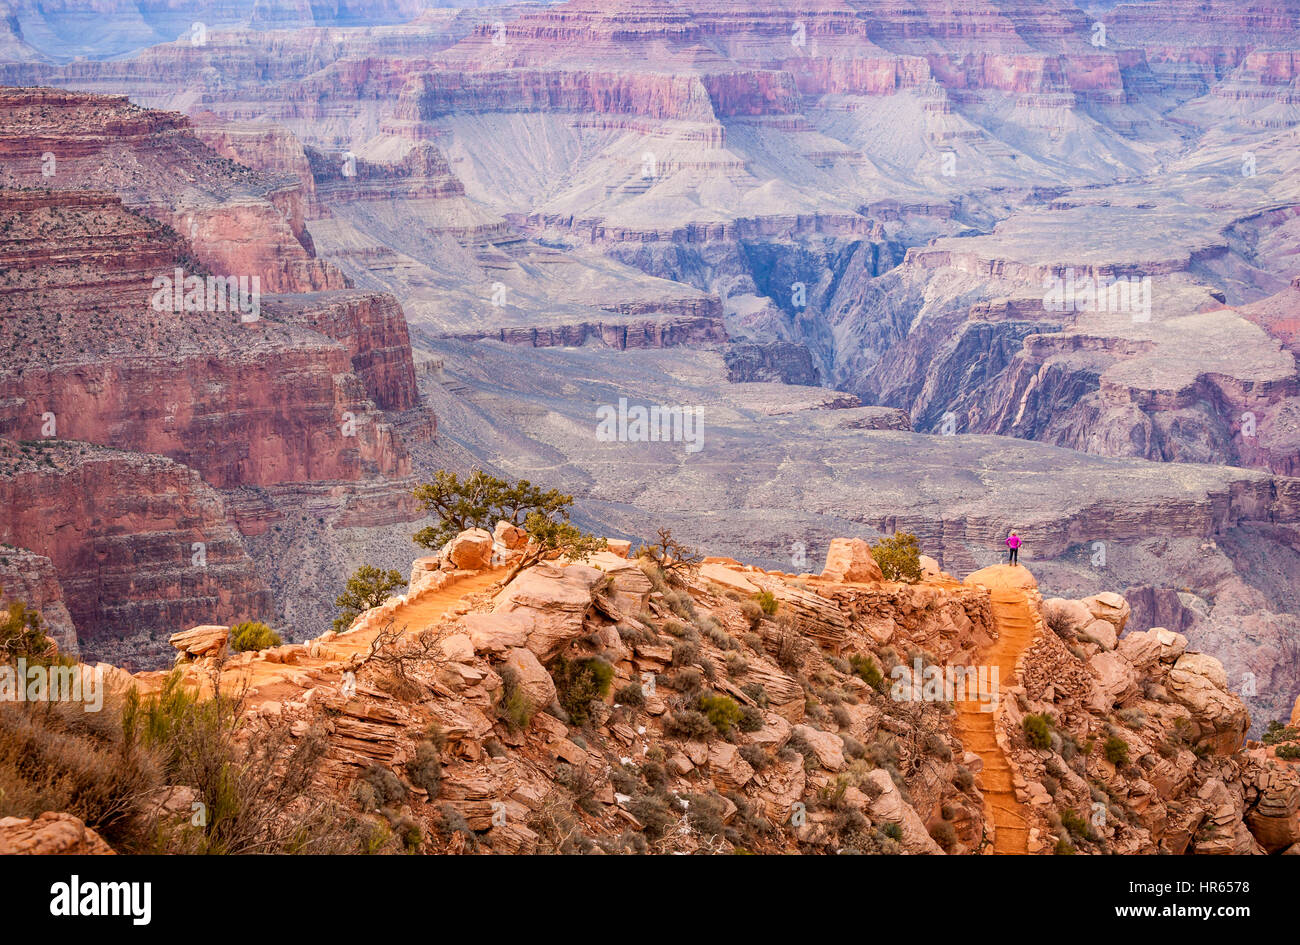 Looking don the kaibab trail a woman stands on an overlook, Grand Canyon's south rim, Grand Canyon National - Stock Image